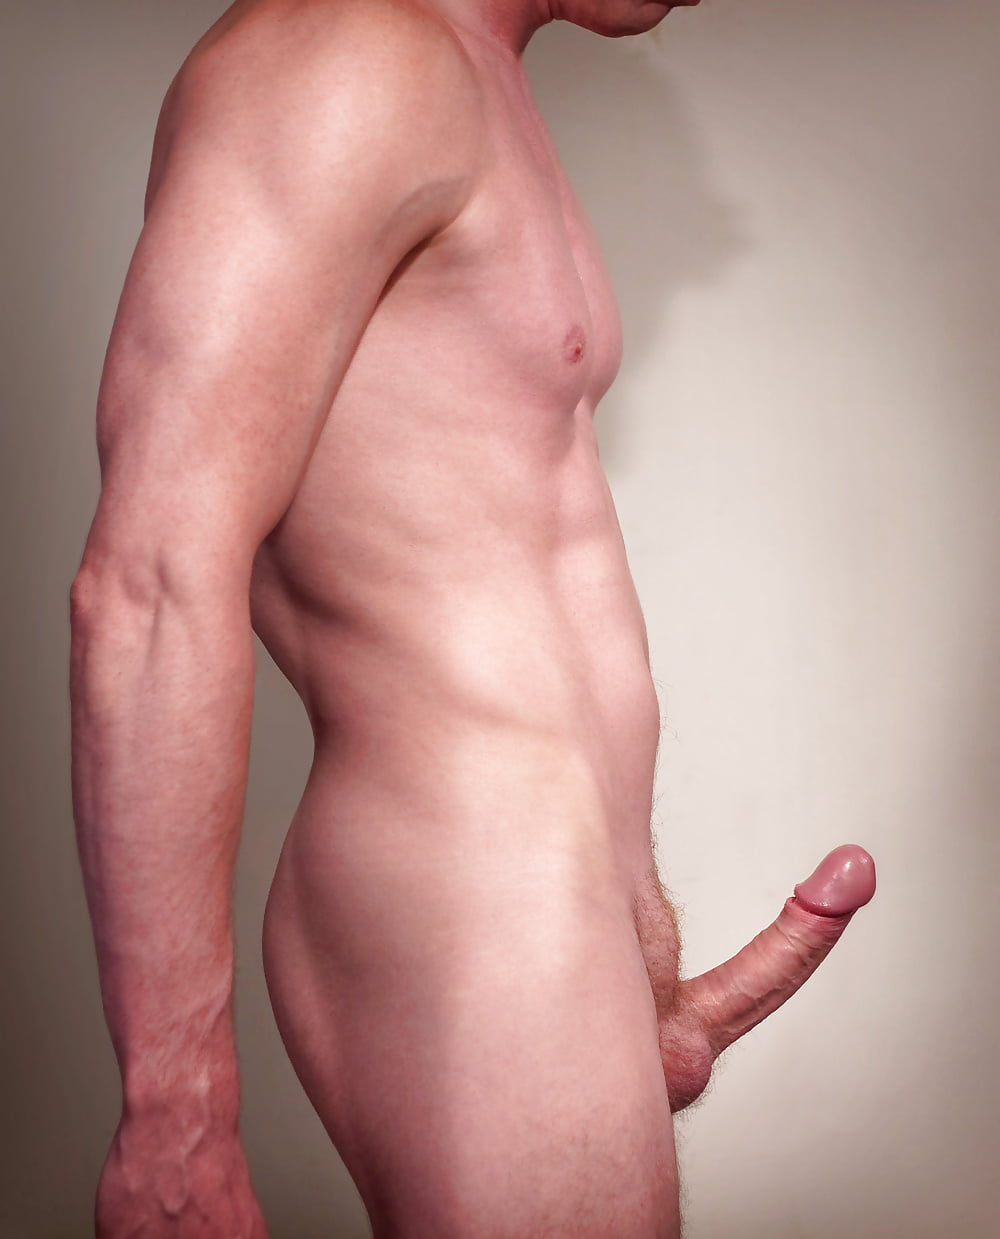 Nude men with average penis size